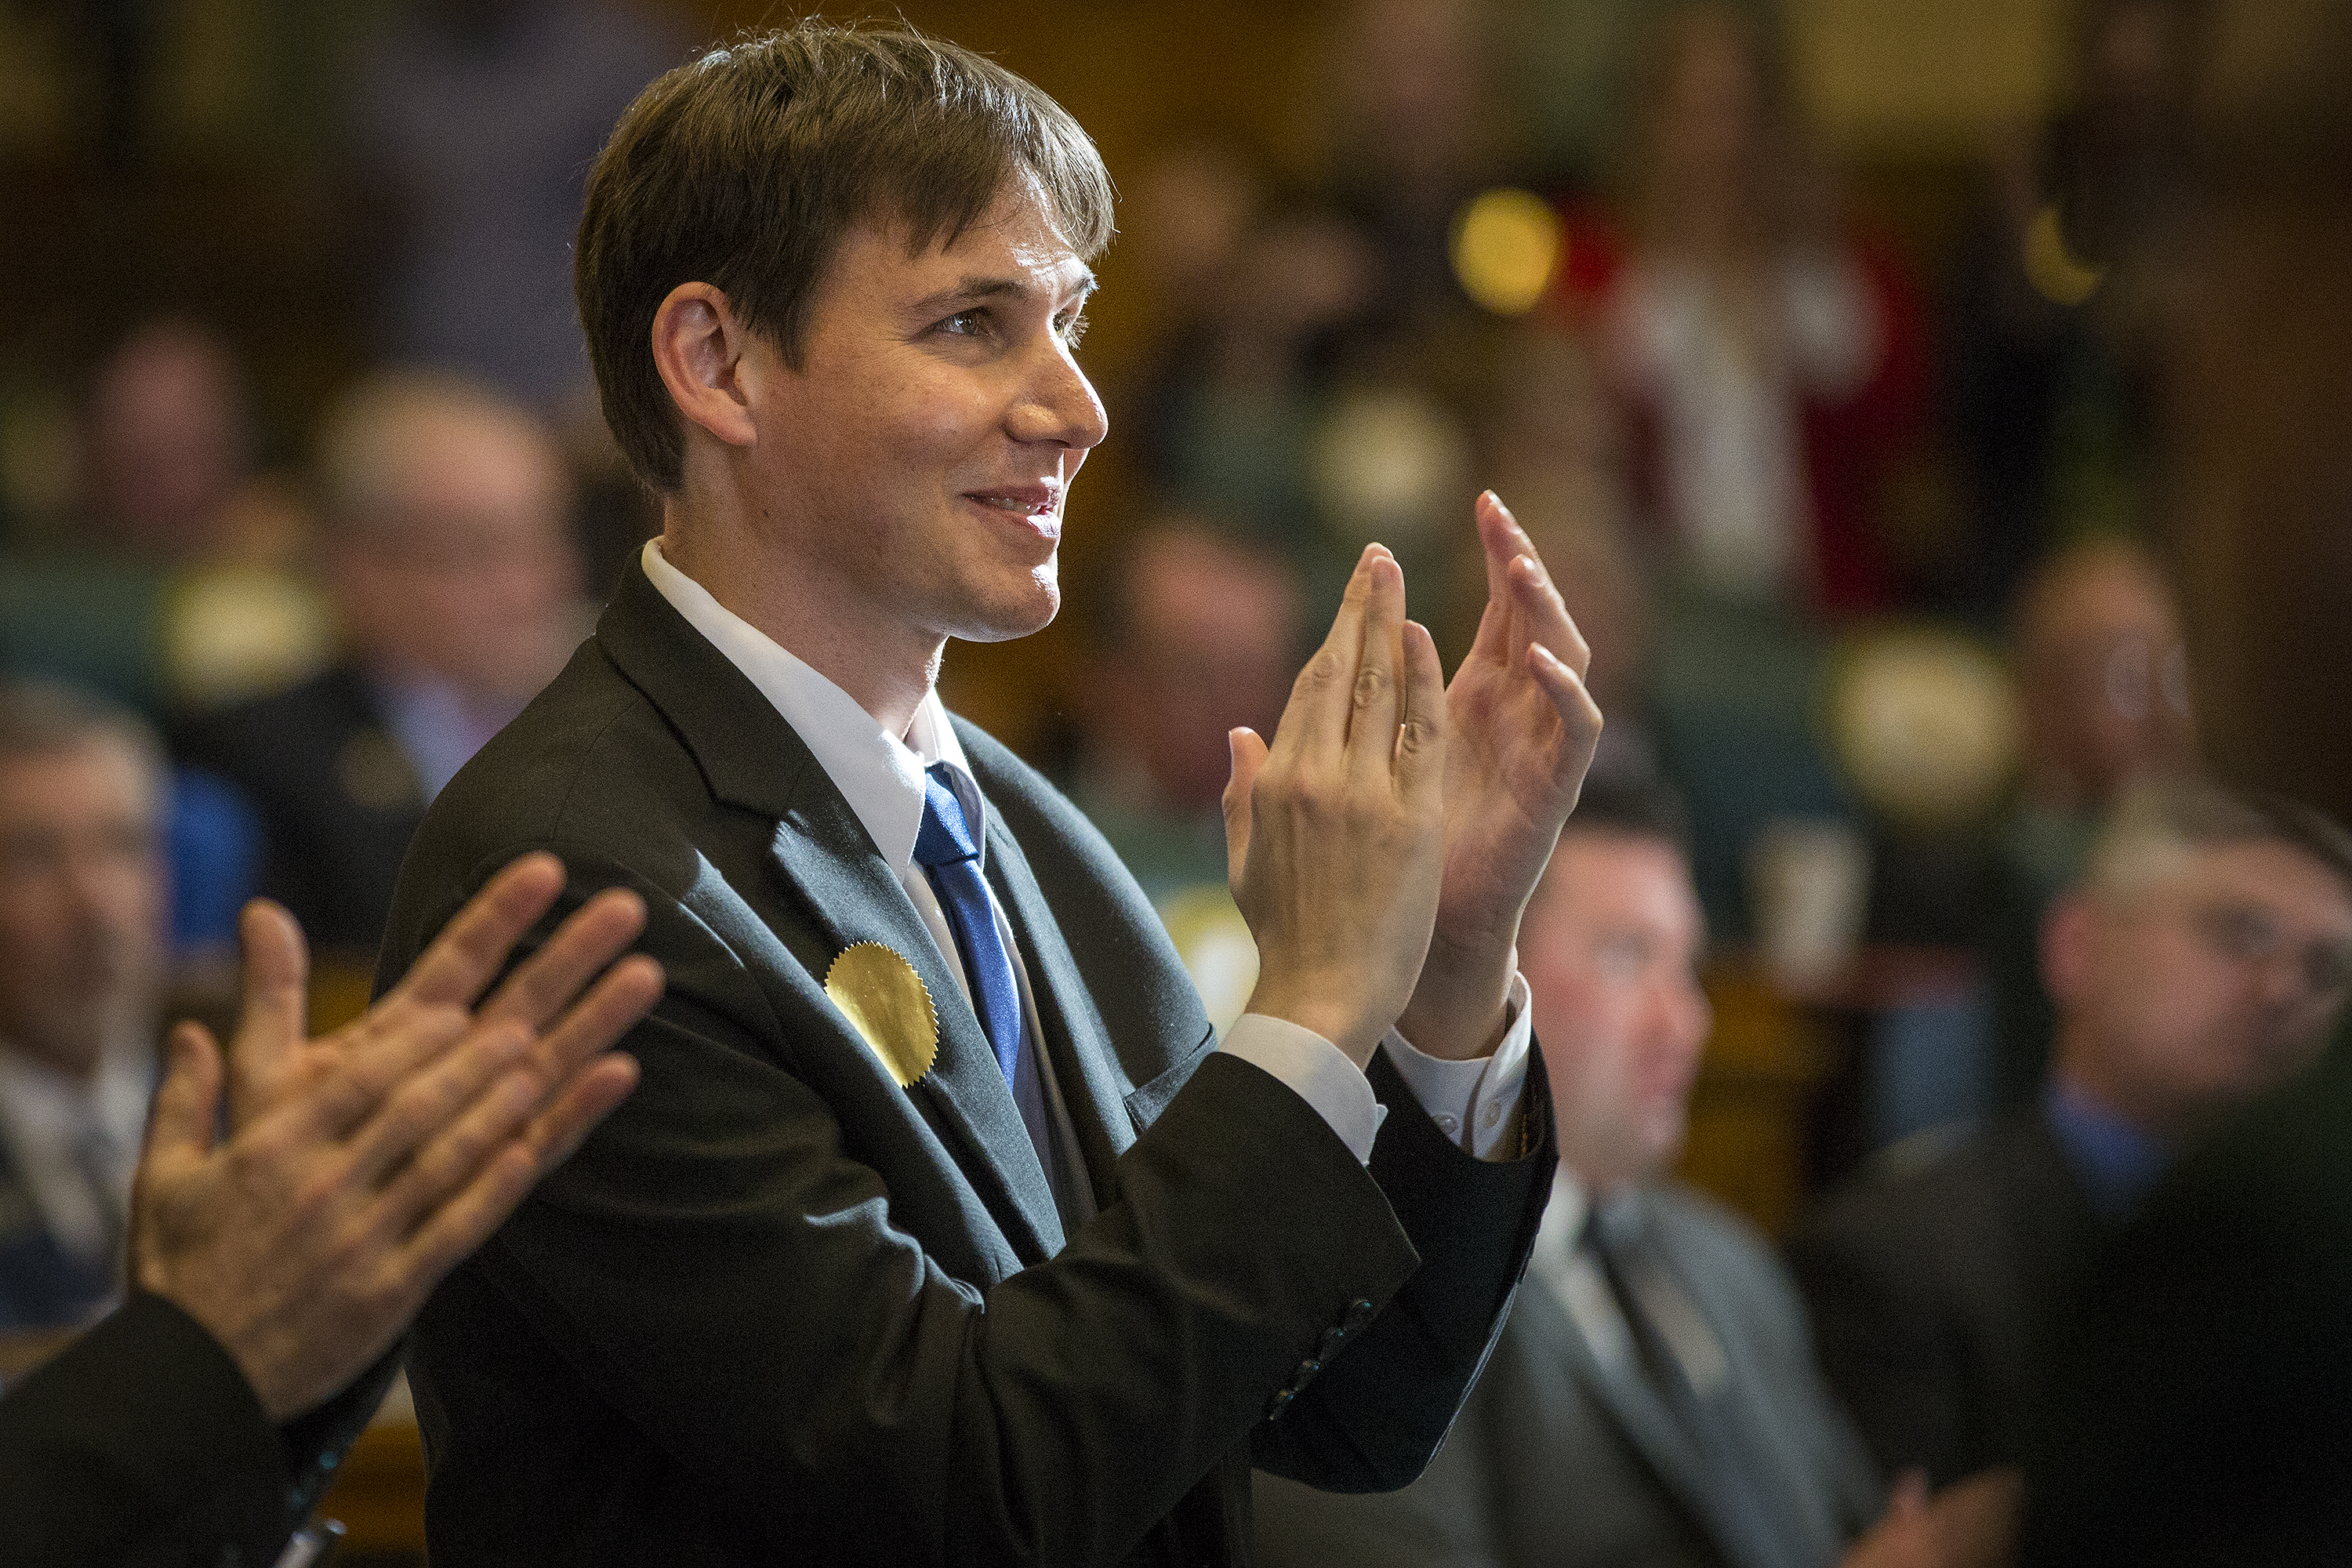 Marlon Reis, Gov. Jared Polis' partner, applauds during Polis' State of the State address to the General Assembly Thursday Jan. 10, 2013.